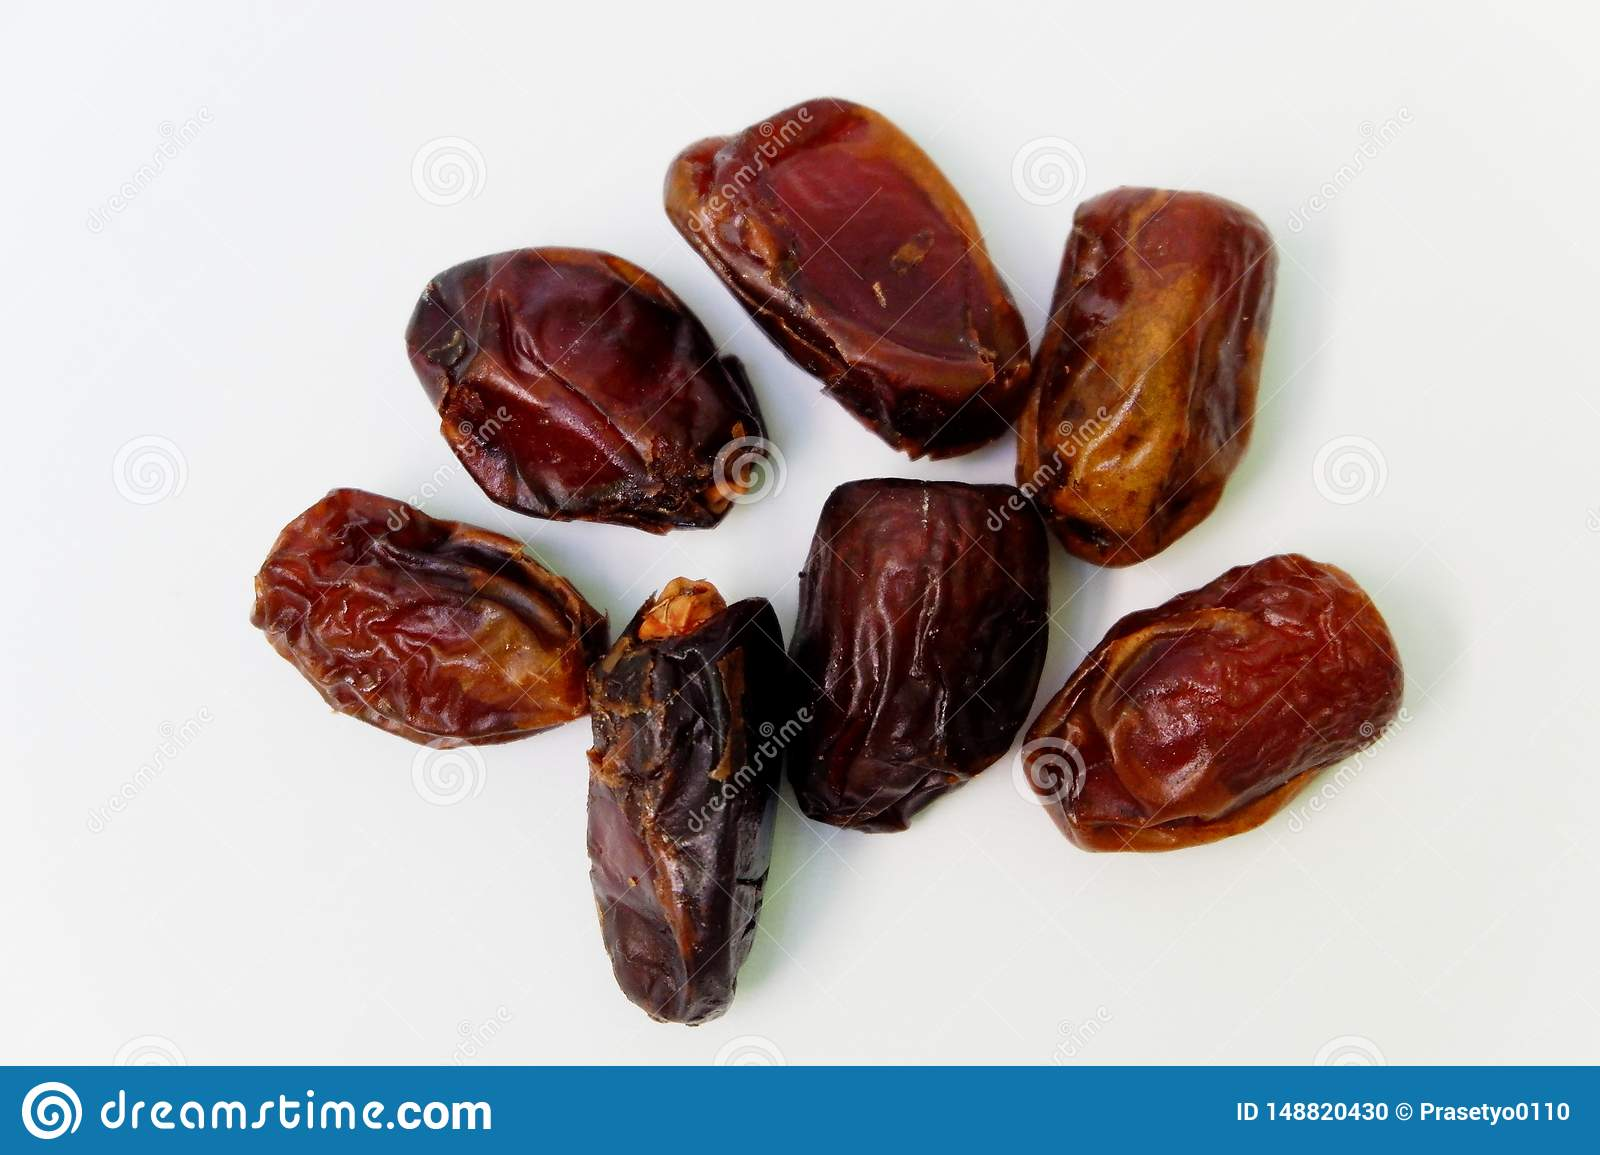 Dates fruits  on white background. Top view close up details.